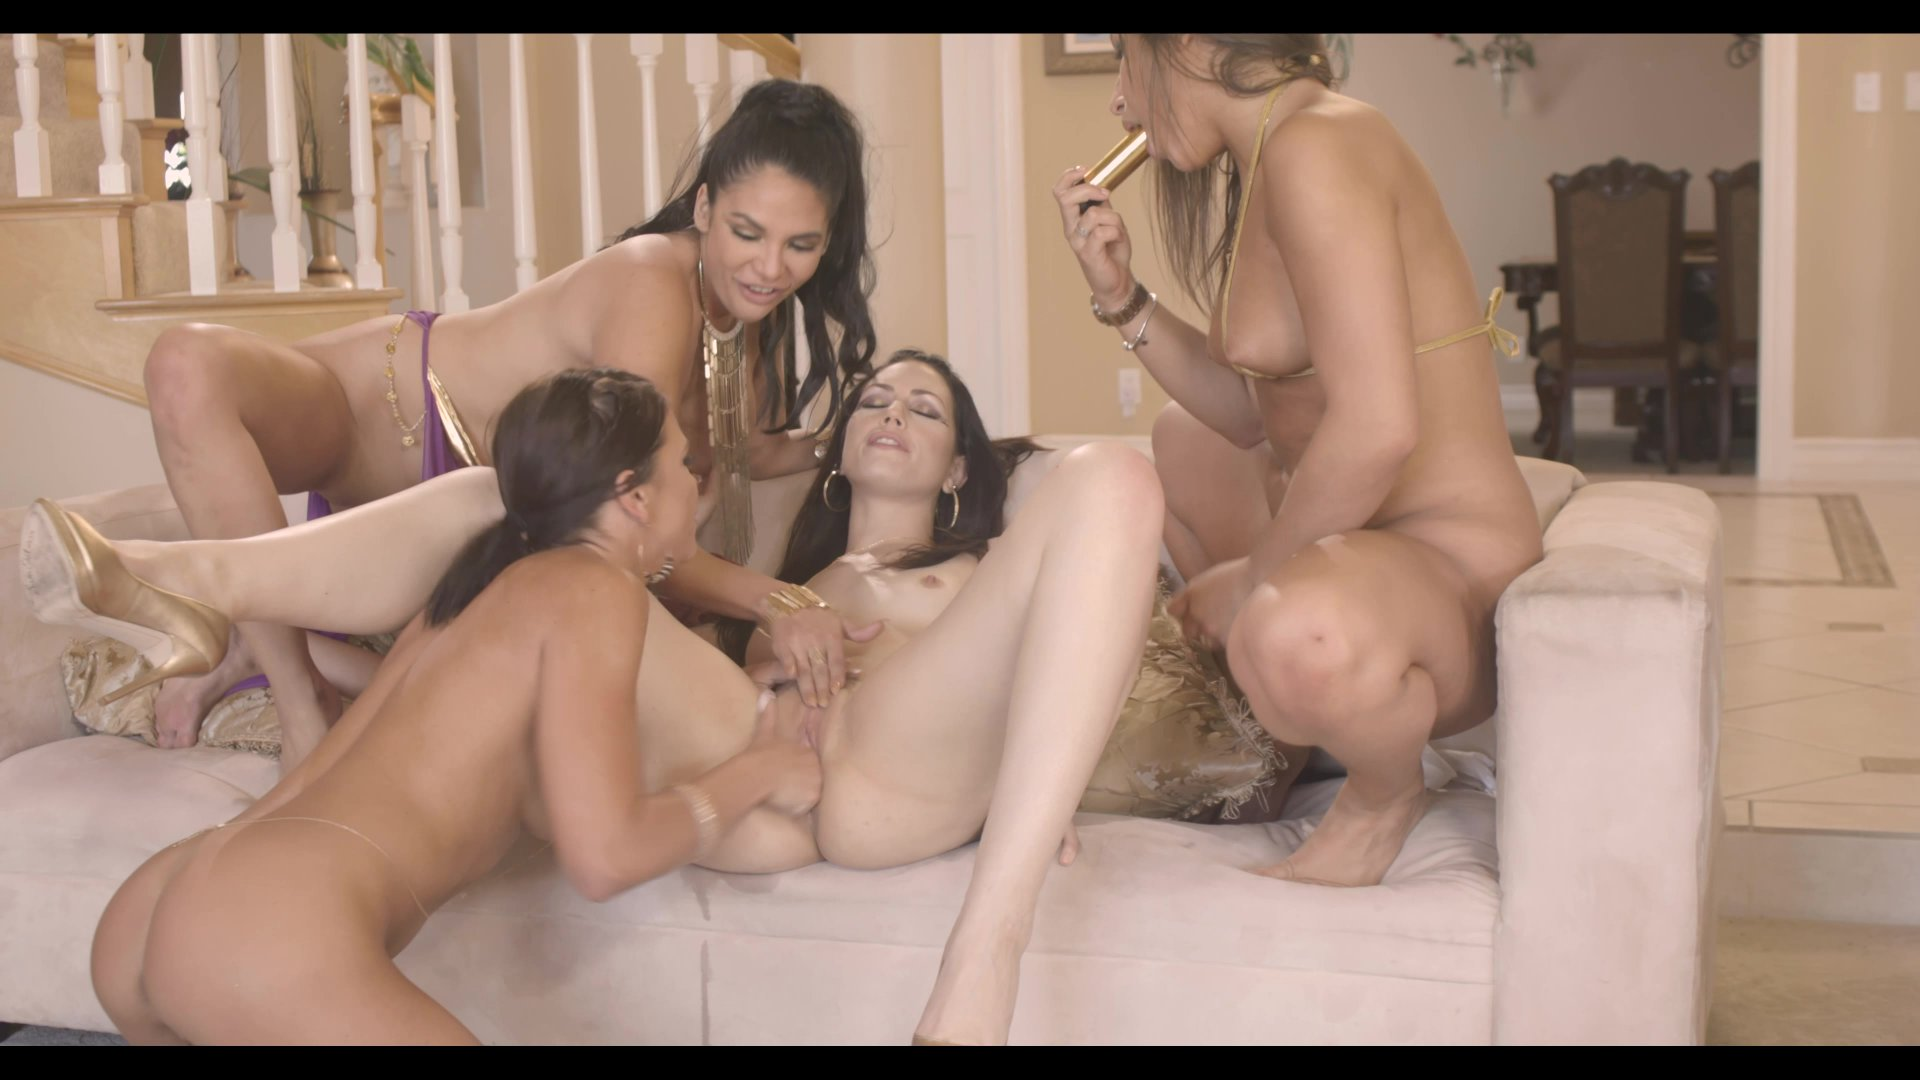 Agree, remarkable Latina chick orgies